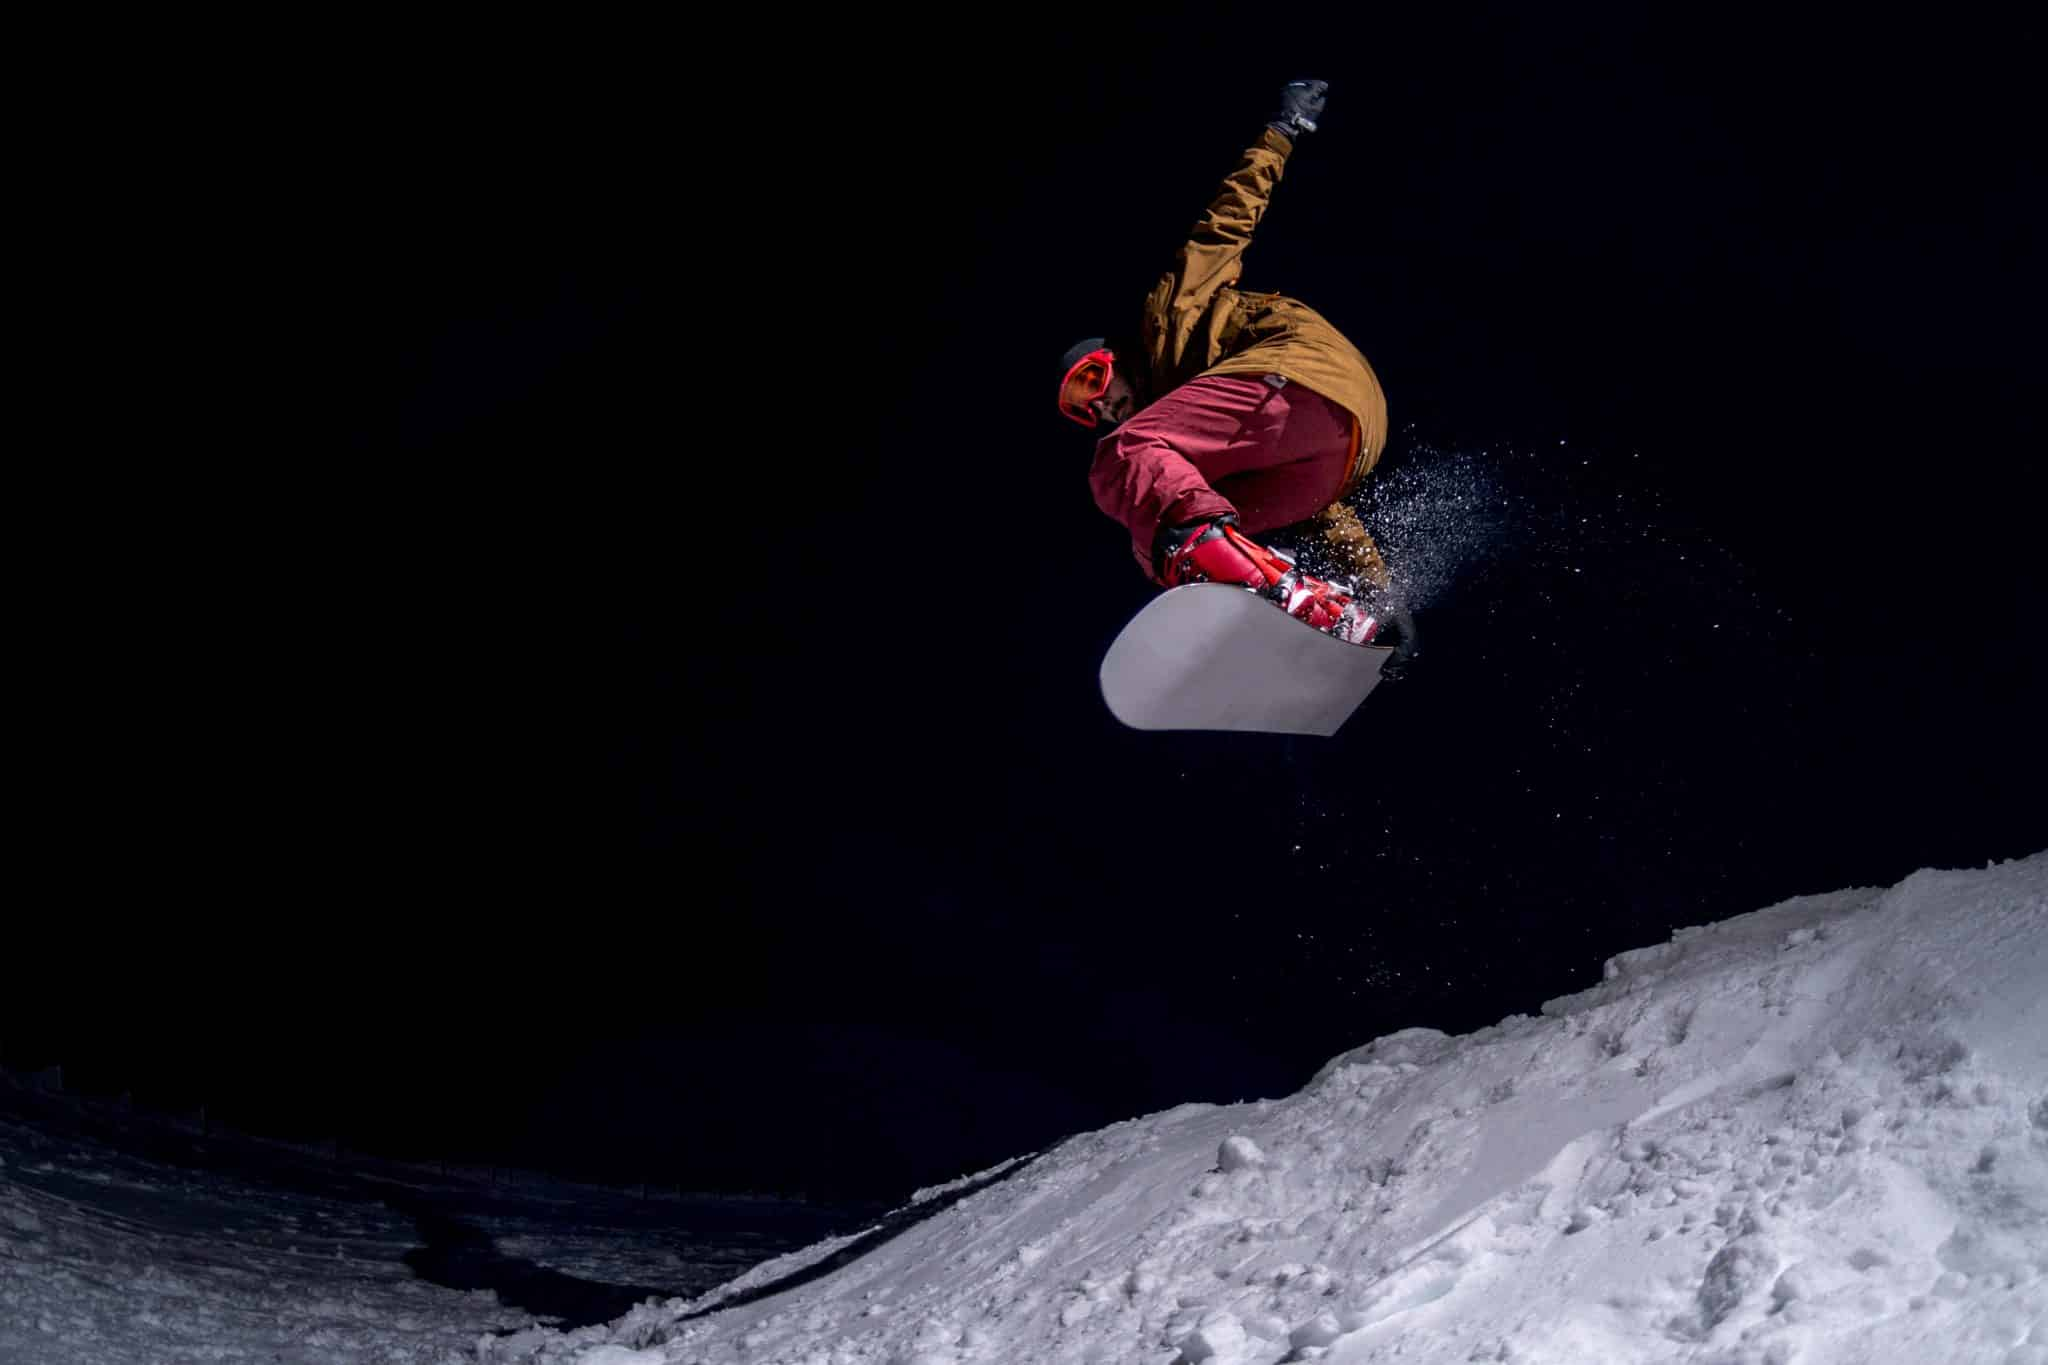 Snowboarding at night